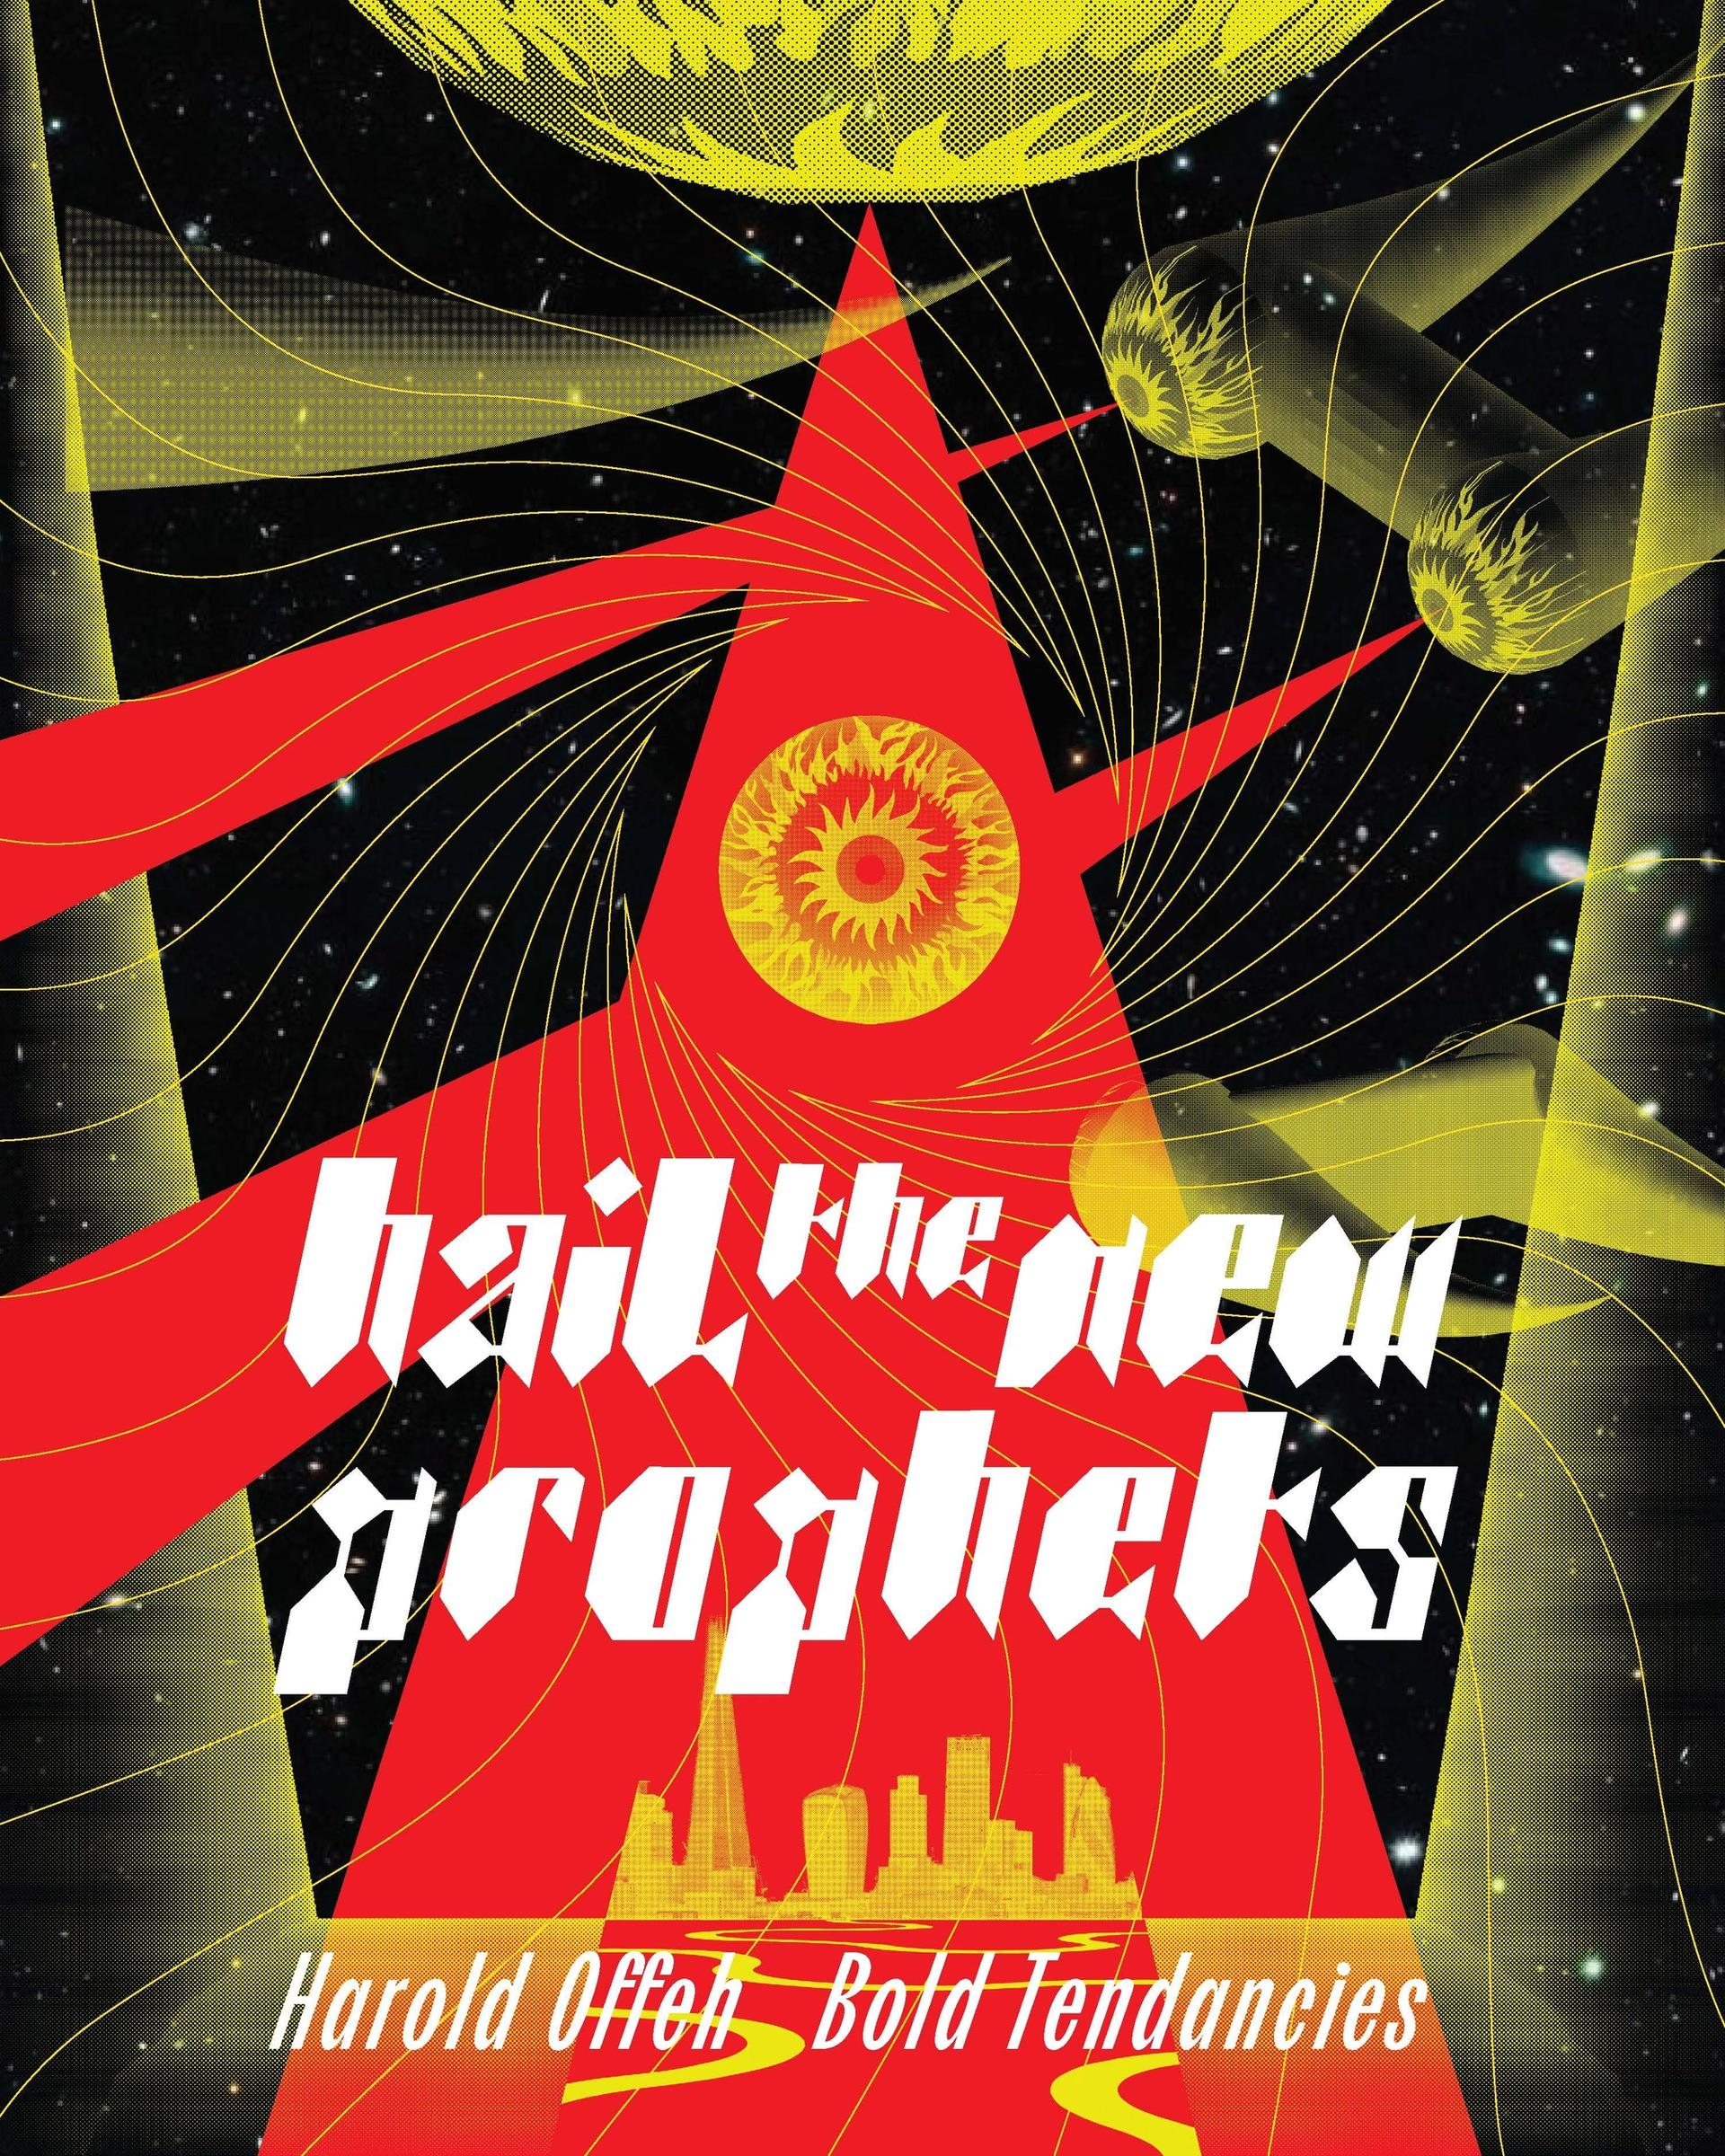 Harold Offeh, Poster: Hail the New Prophets for Bold Tendencies project, 2020